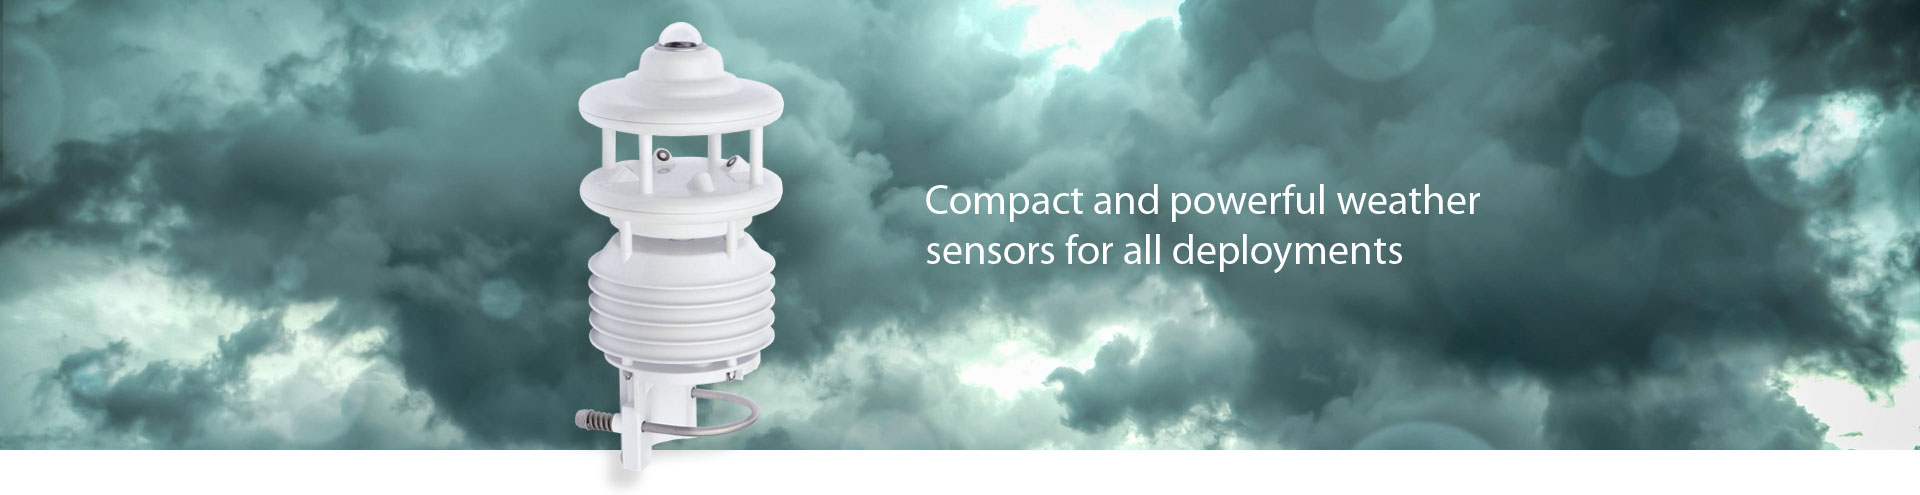 Compact and powerful weather sensors for all deployments